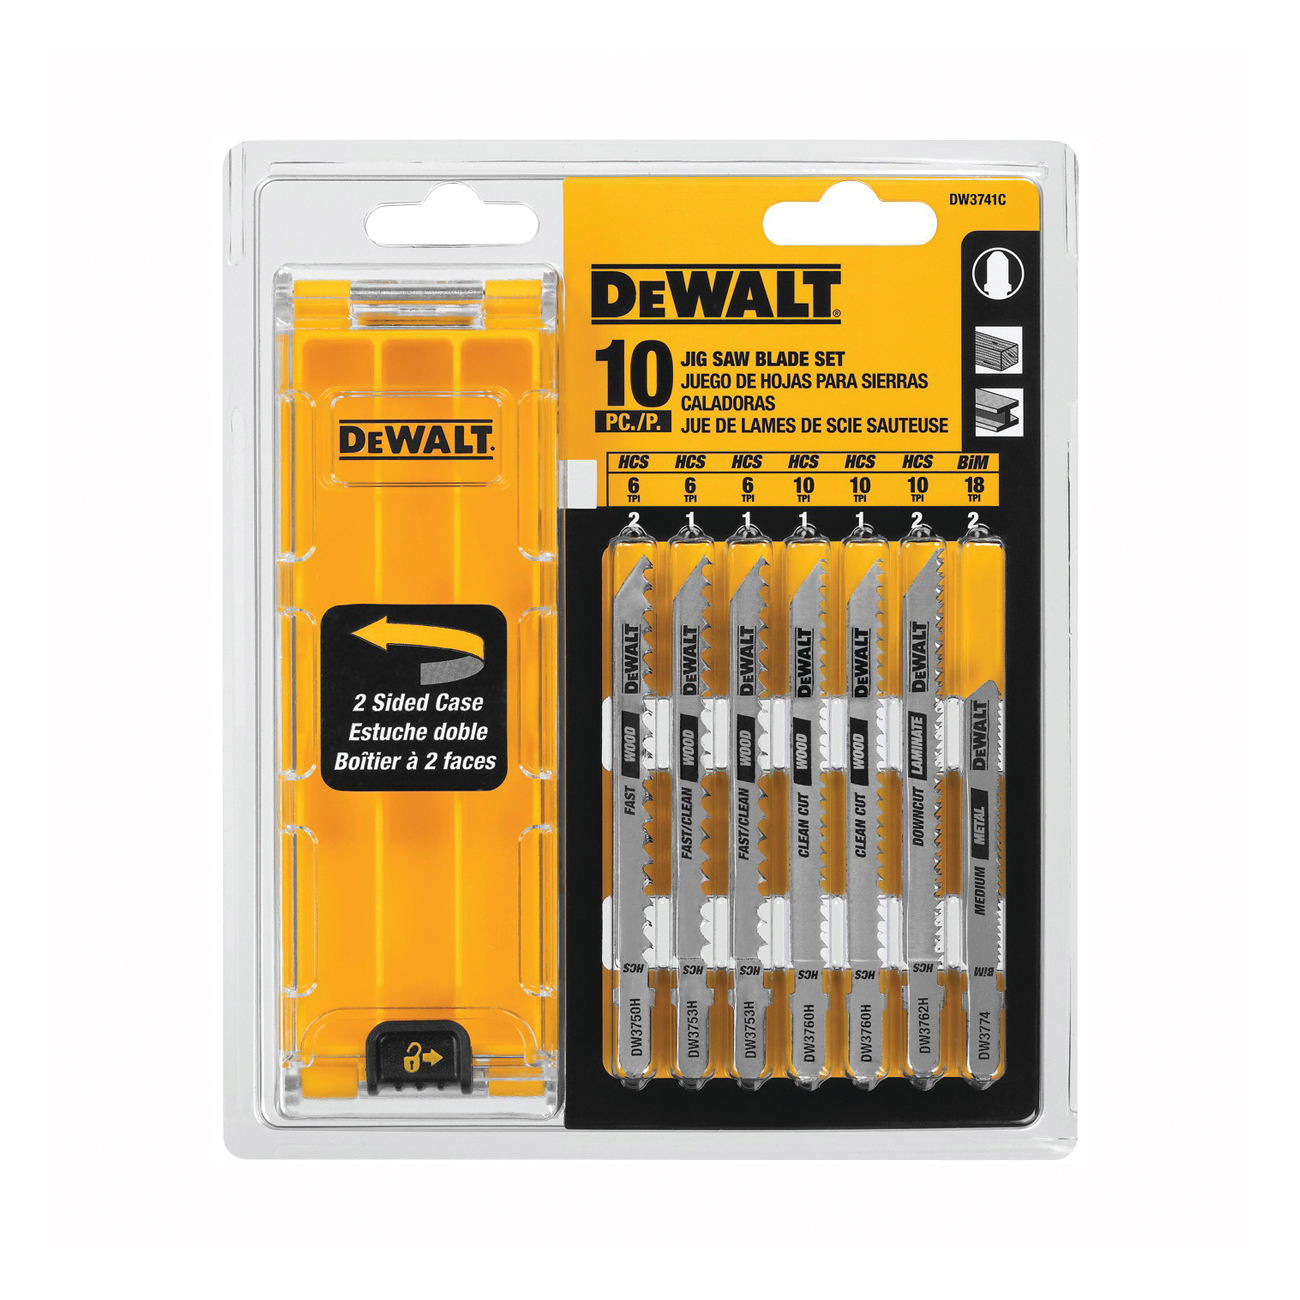 Picture of DeWALT DW3741C Jig Saw Blade Kit, 10 -Piece, HCS